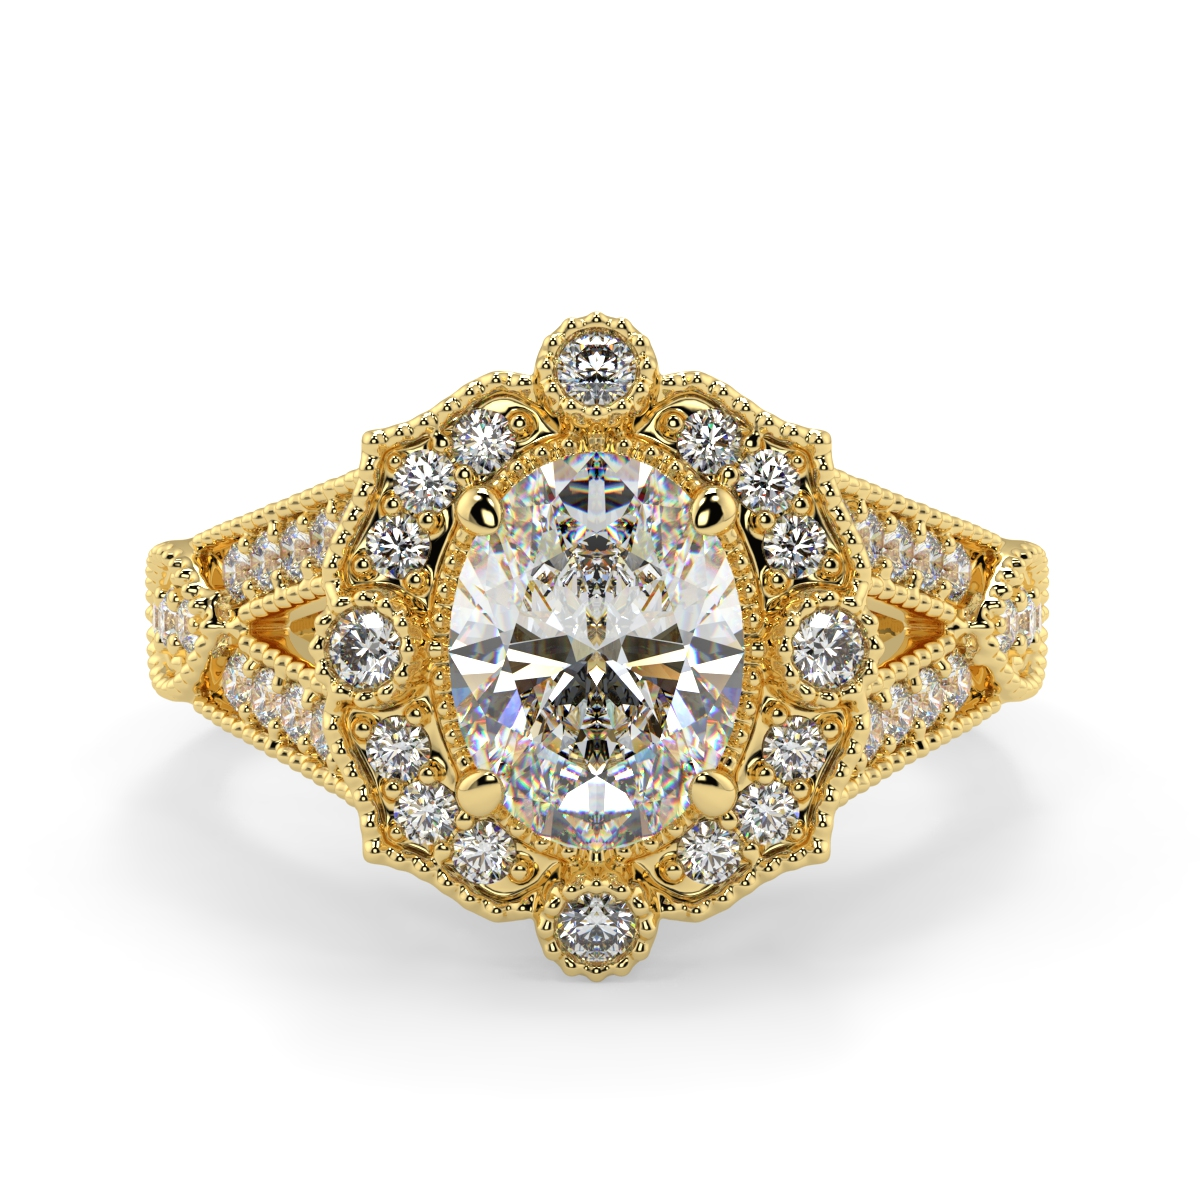 Oval Pave Set Victorian Ring